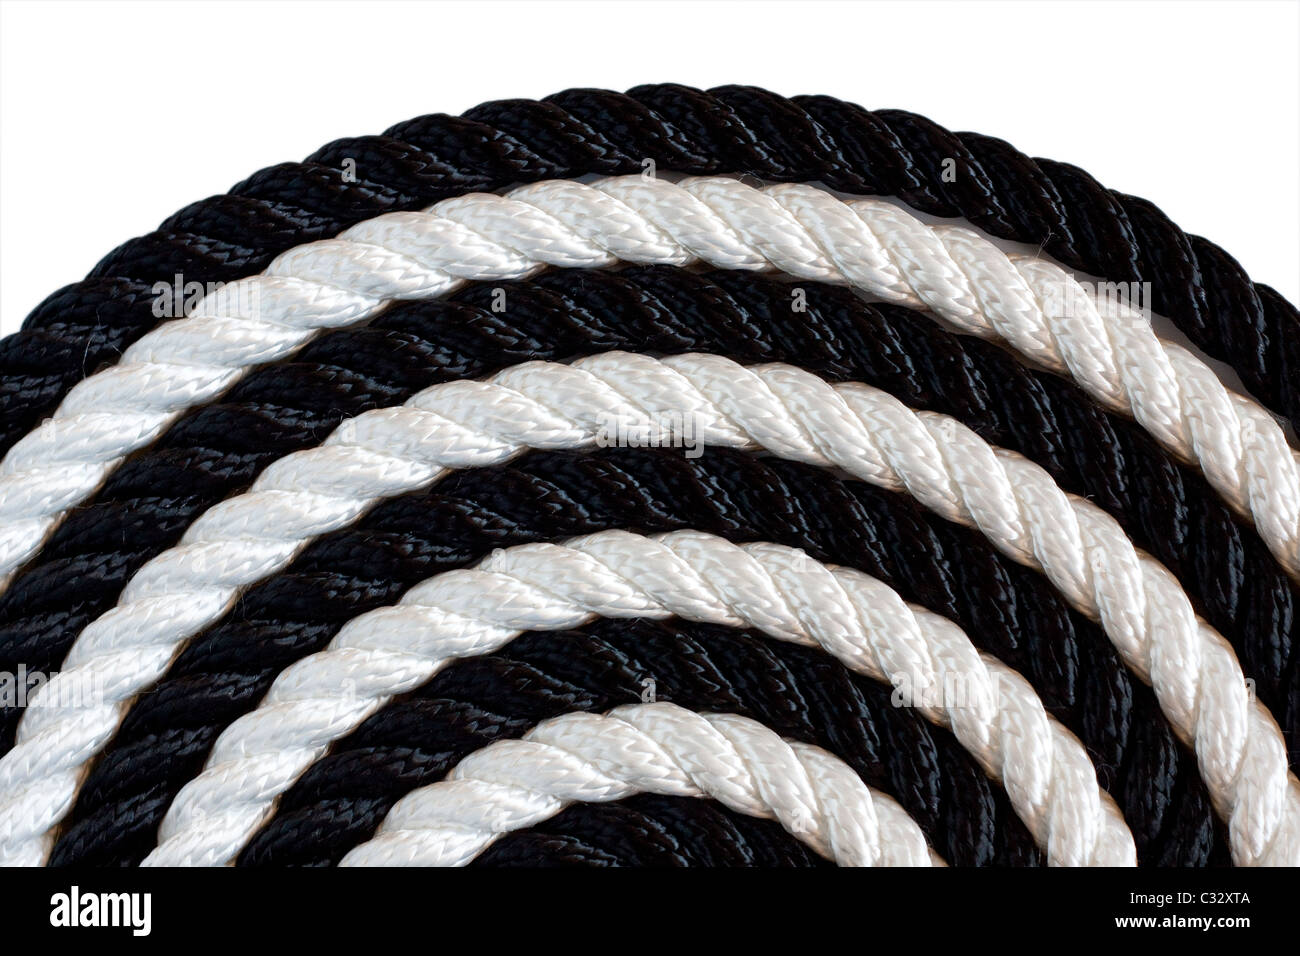 Black and white rope on white background - Stock Image